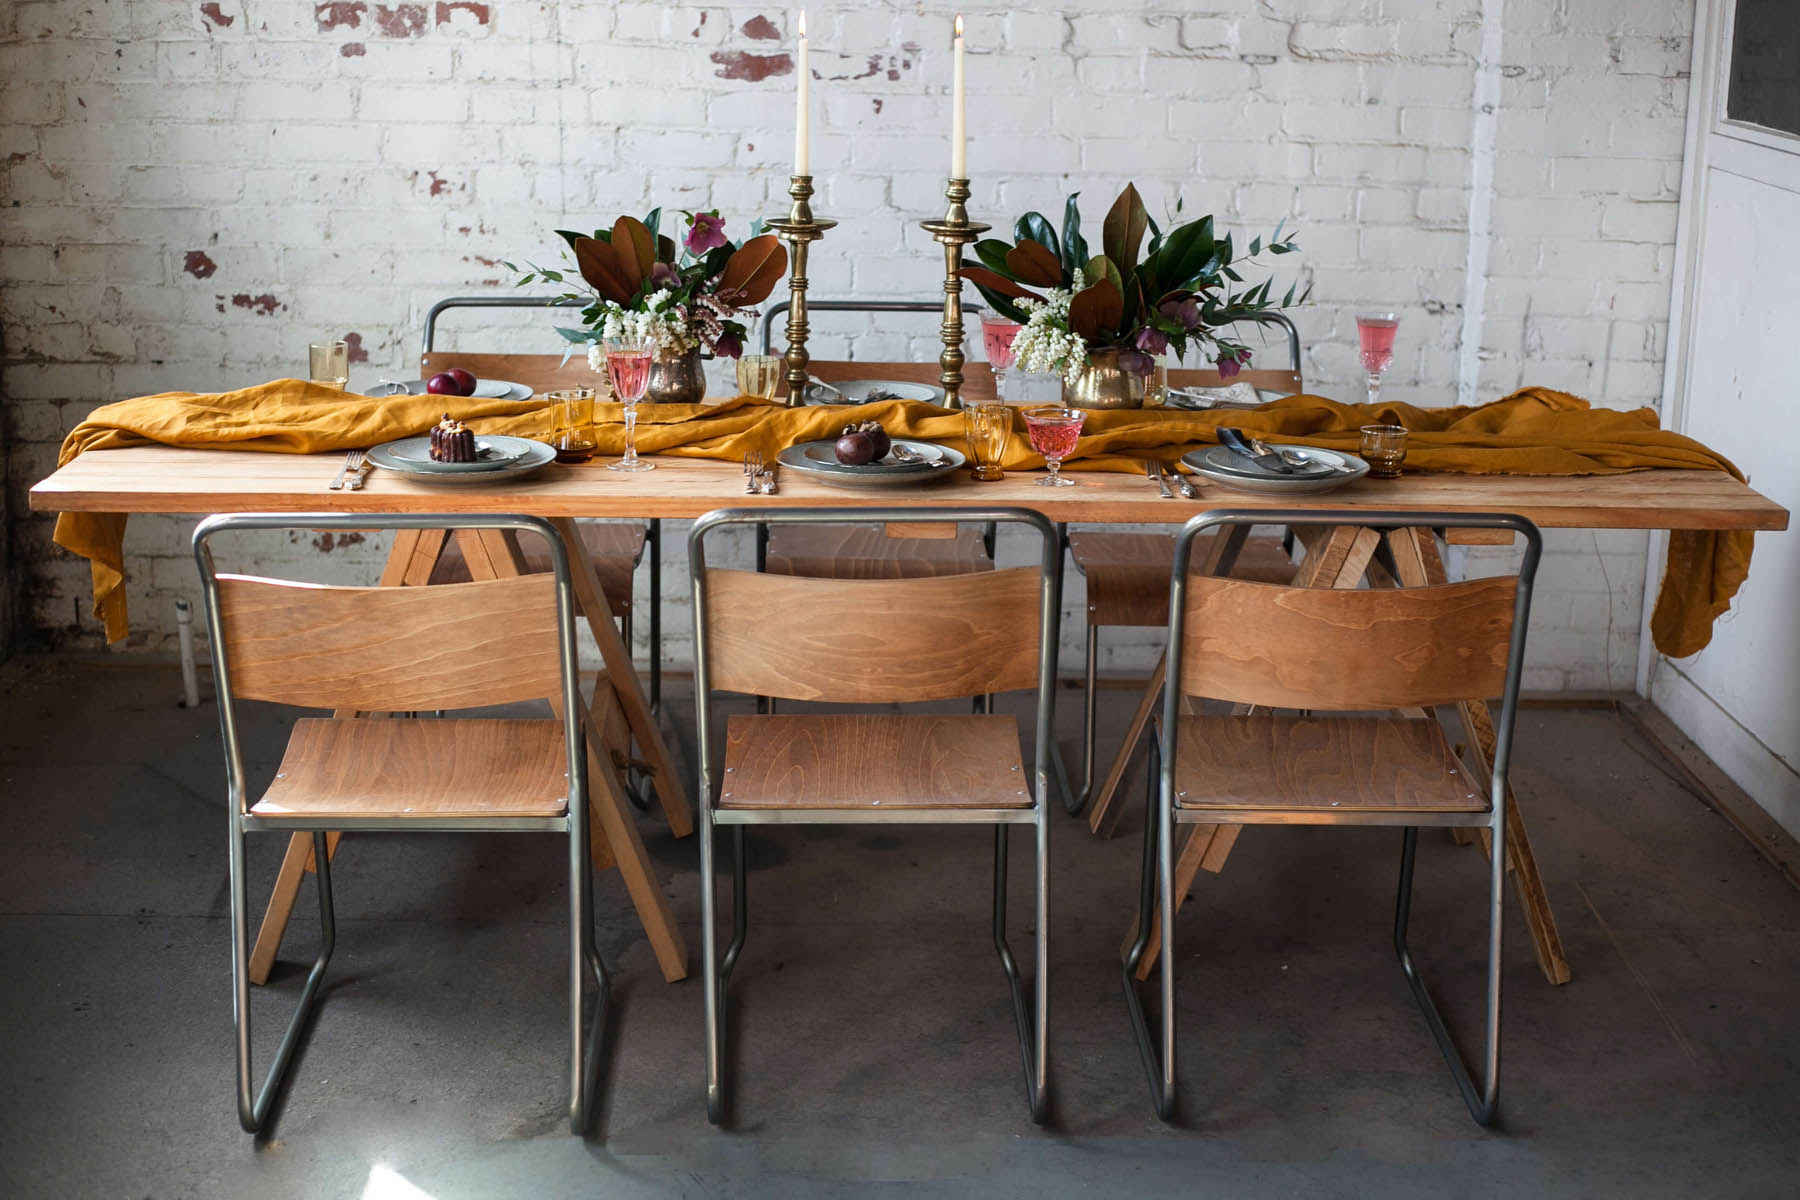 Swell Event Hire - Dunedin Wedding Hire and Stylists